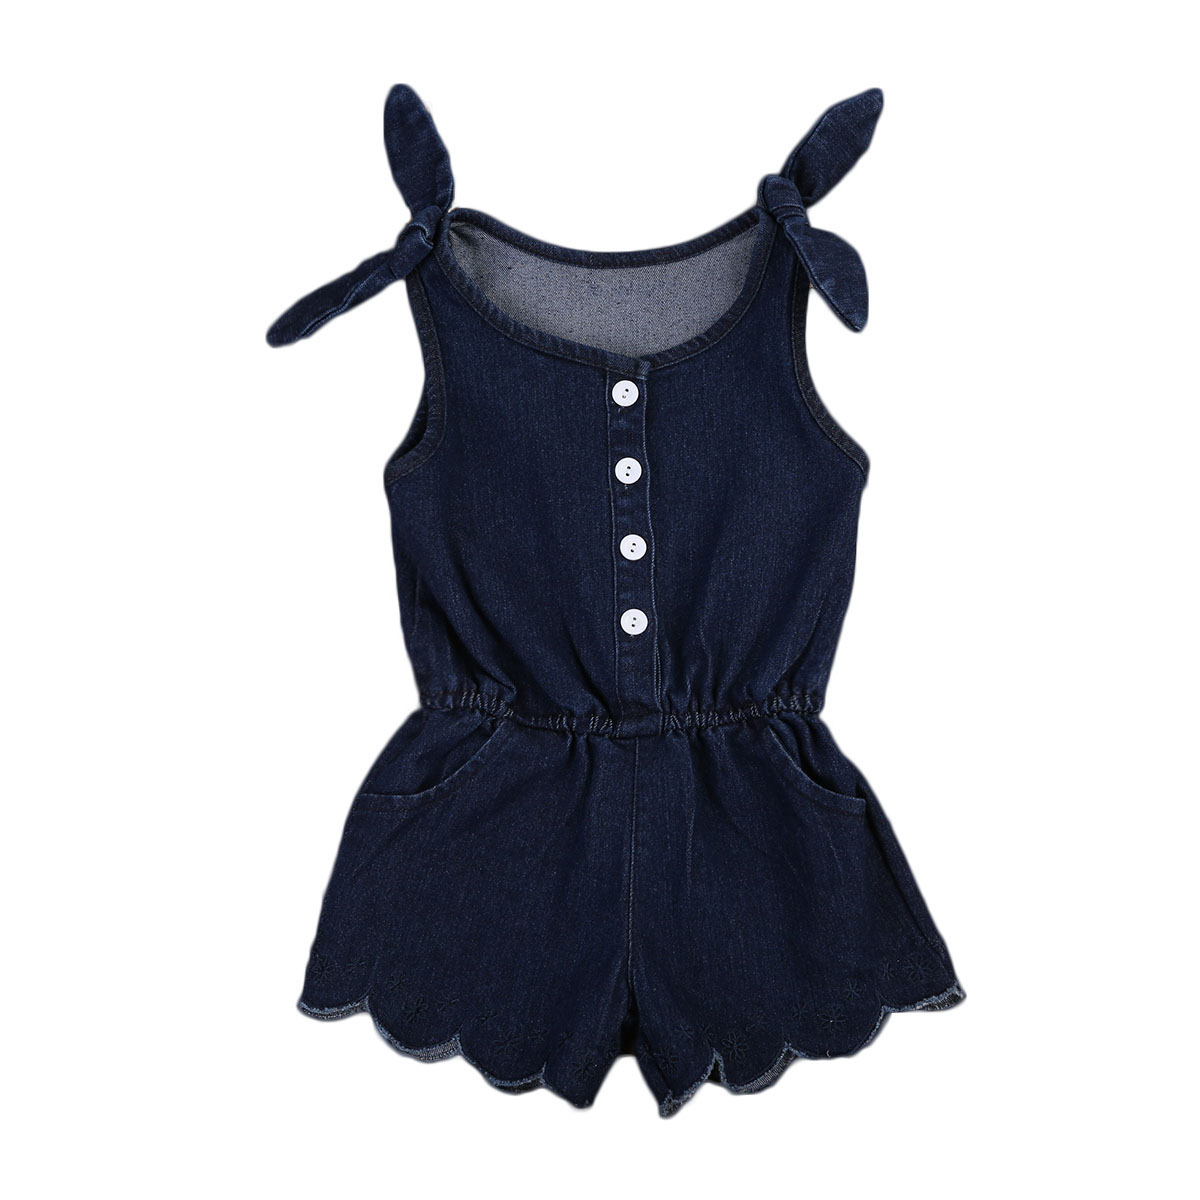 Newborn Infant Baby Girl Sleeveless Denim Romper Jumpsuit Toddler One-Pieces Outfits Summer Sunsuit Clothes summer newborn infant baby girl romper short sleeve floral romper jumpsuit outfits sunsuit clothes